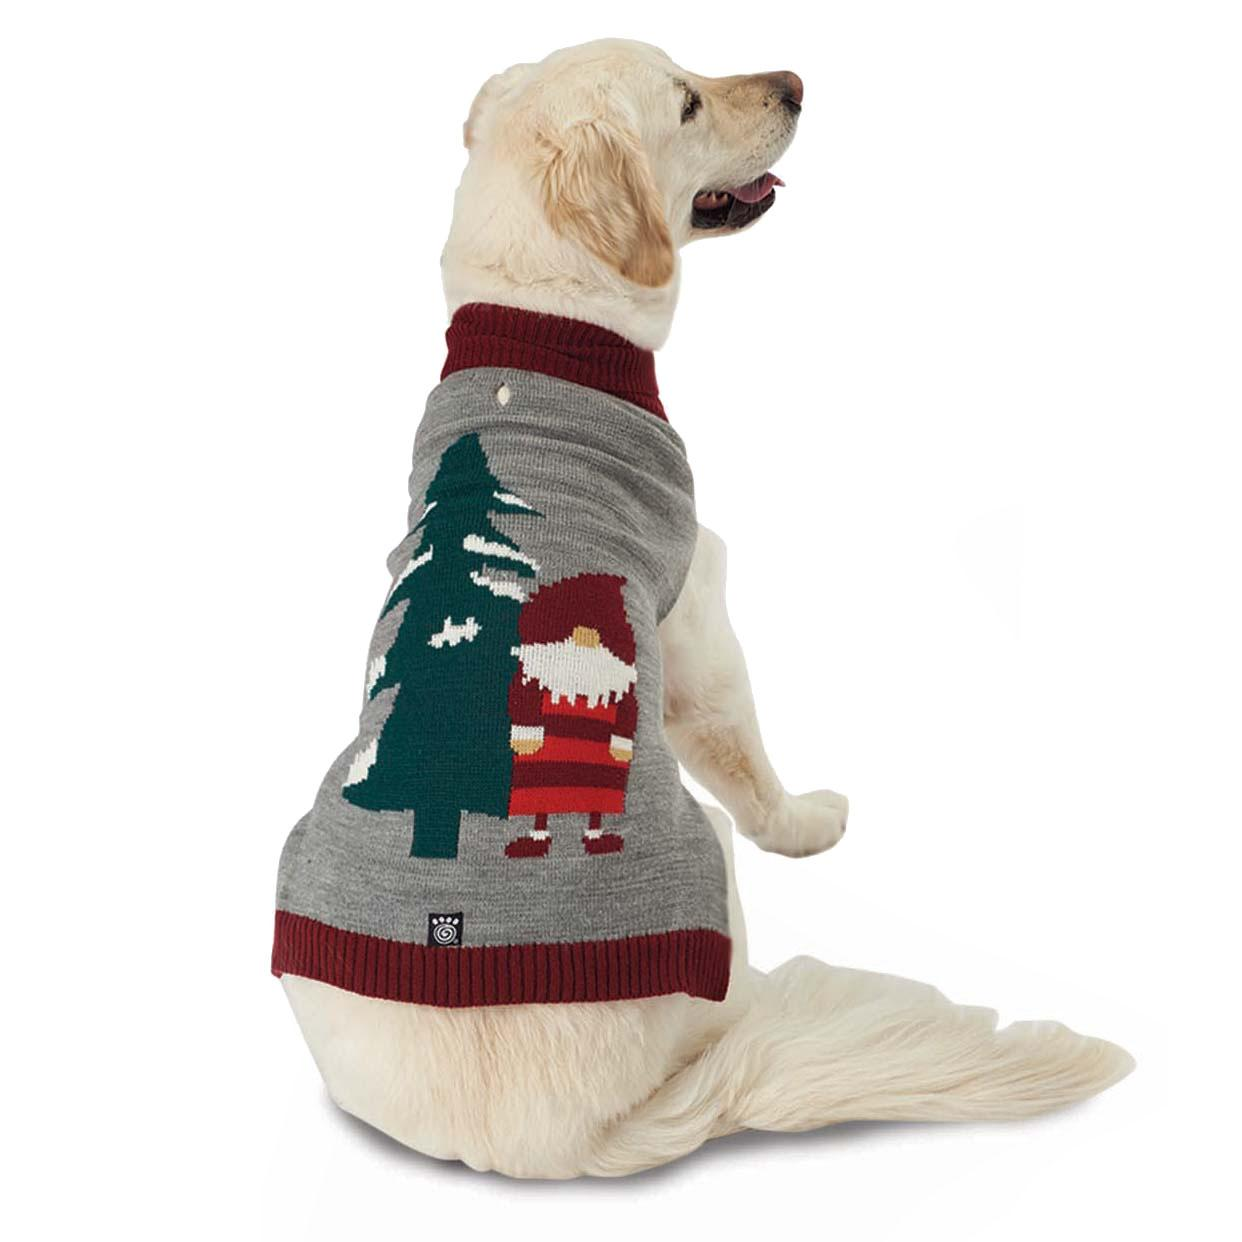 Claus' Santa Gnome Dog Sweater - Gray Heather